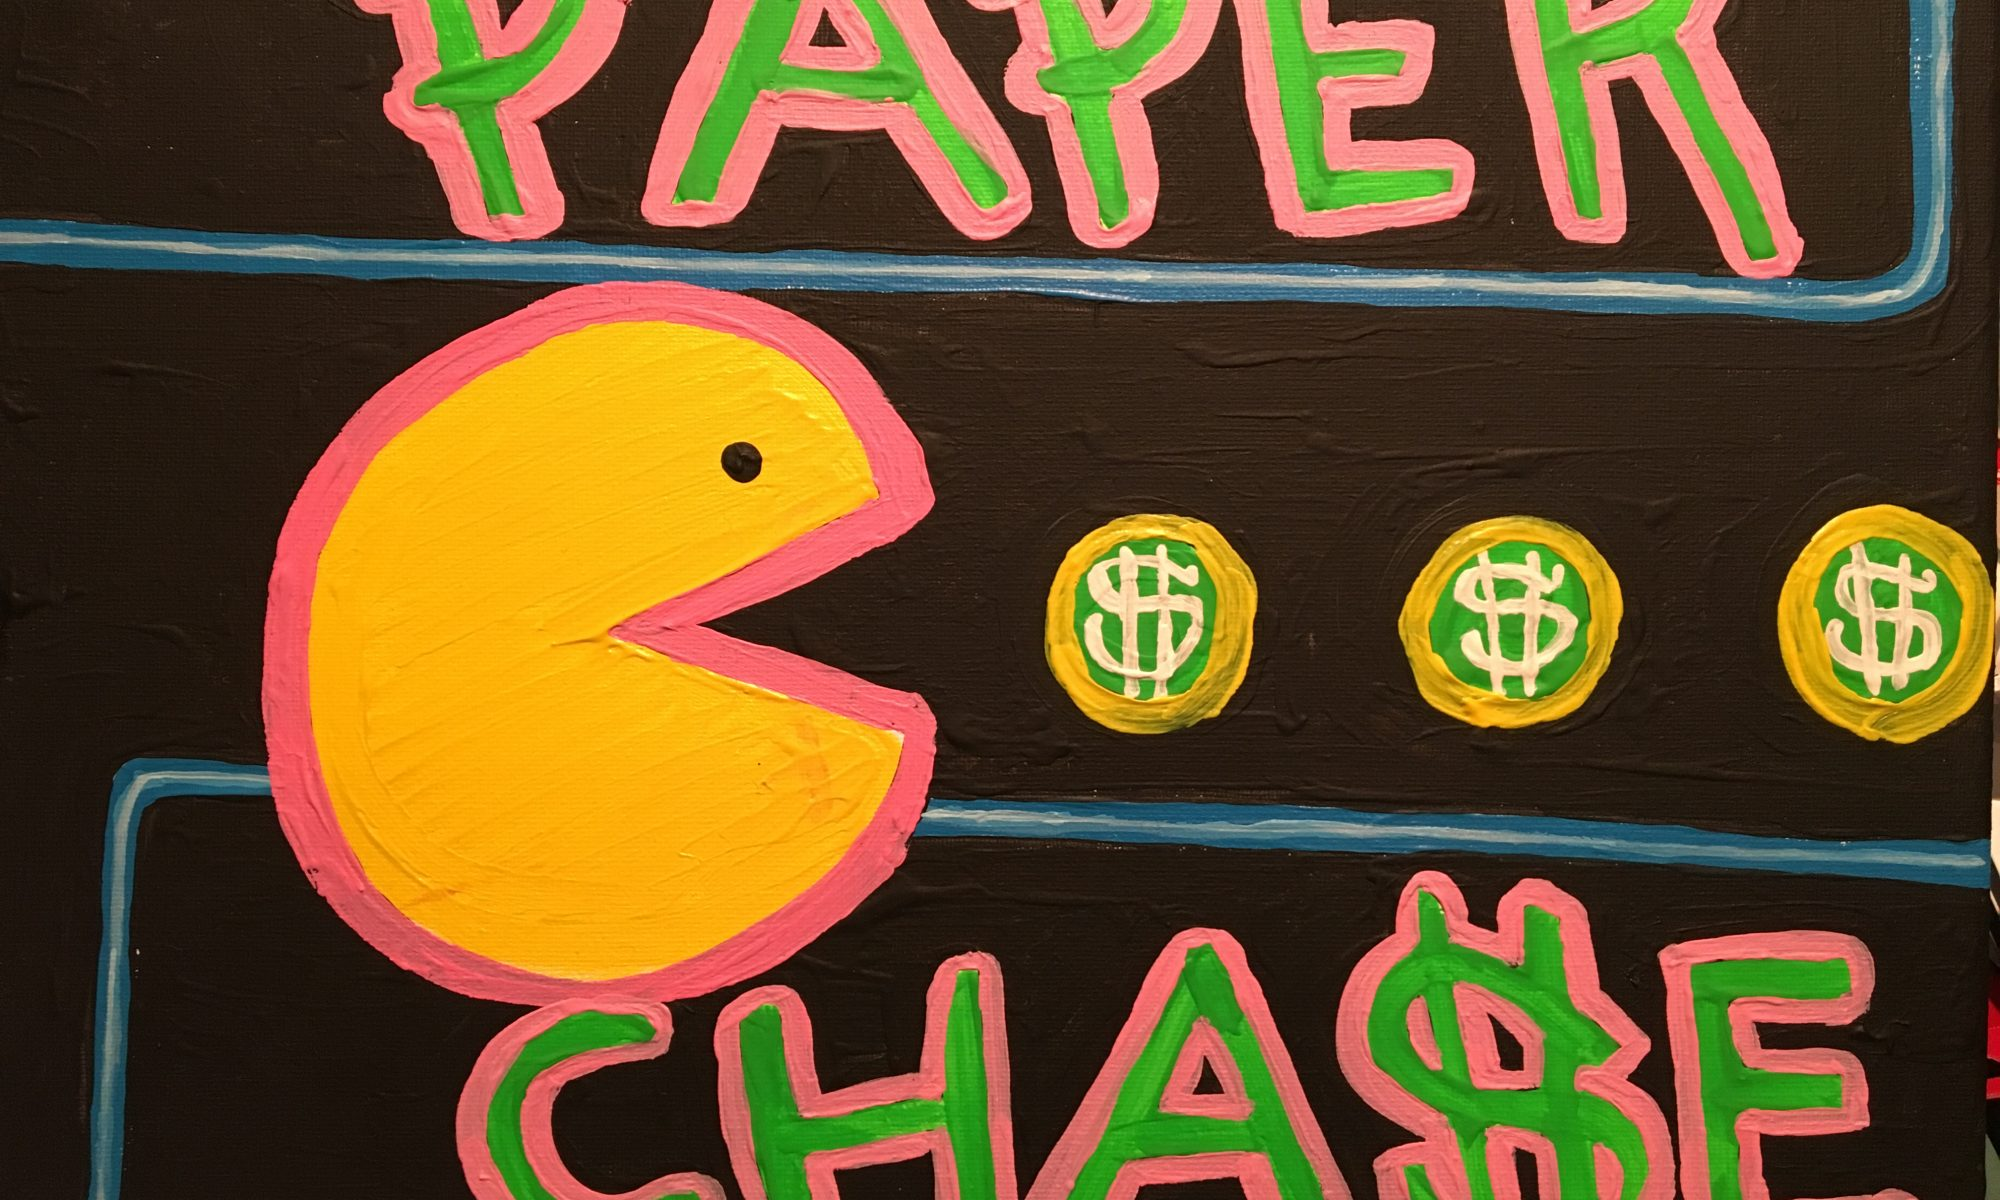 Paper chase 40 x30 cm.